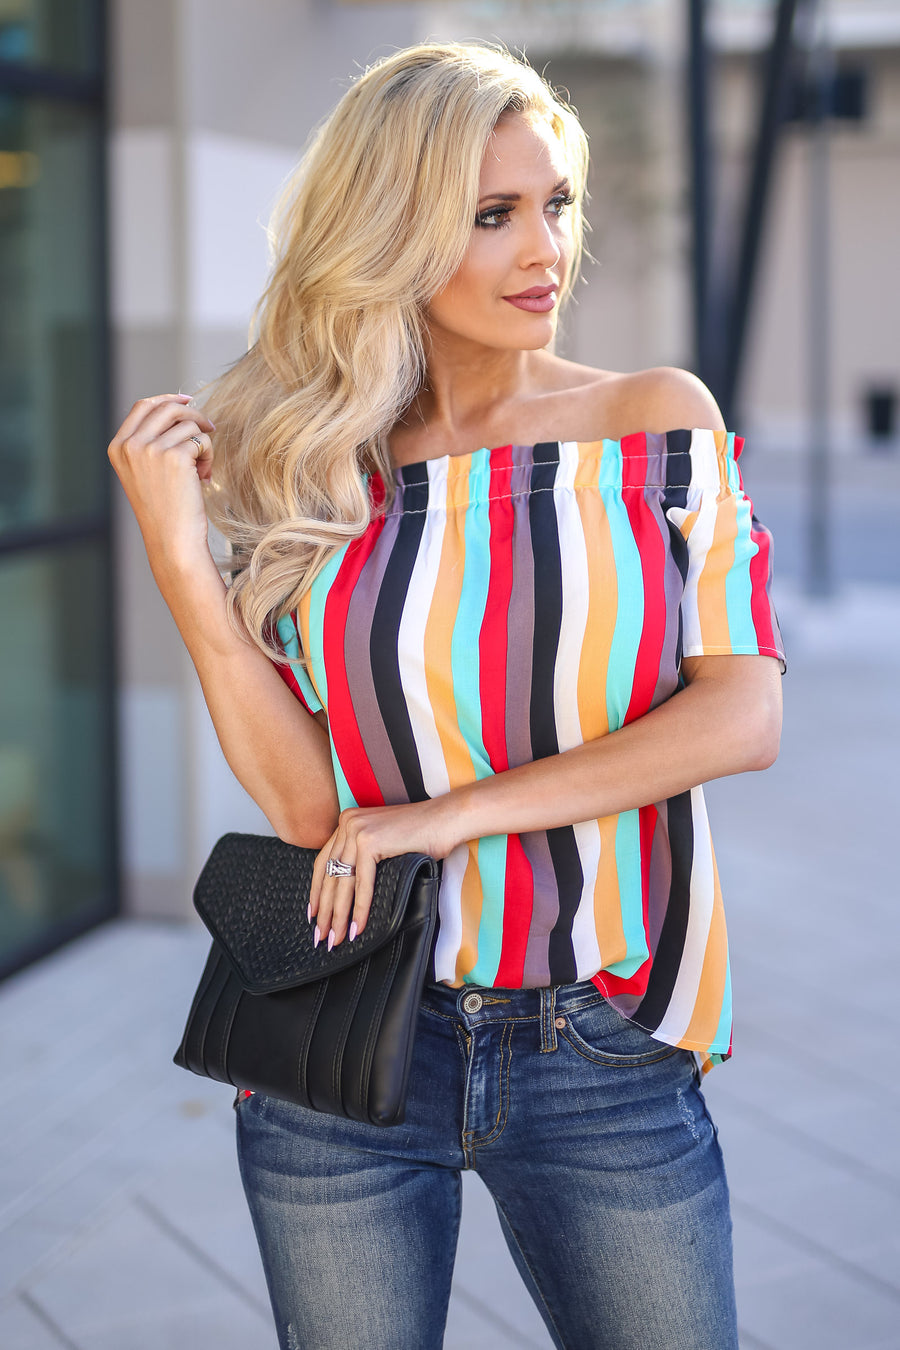 Work Of Art Striped Top - Multicolor women's colorful off the shoulder top, Closet Candy Boutique 1